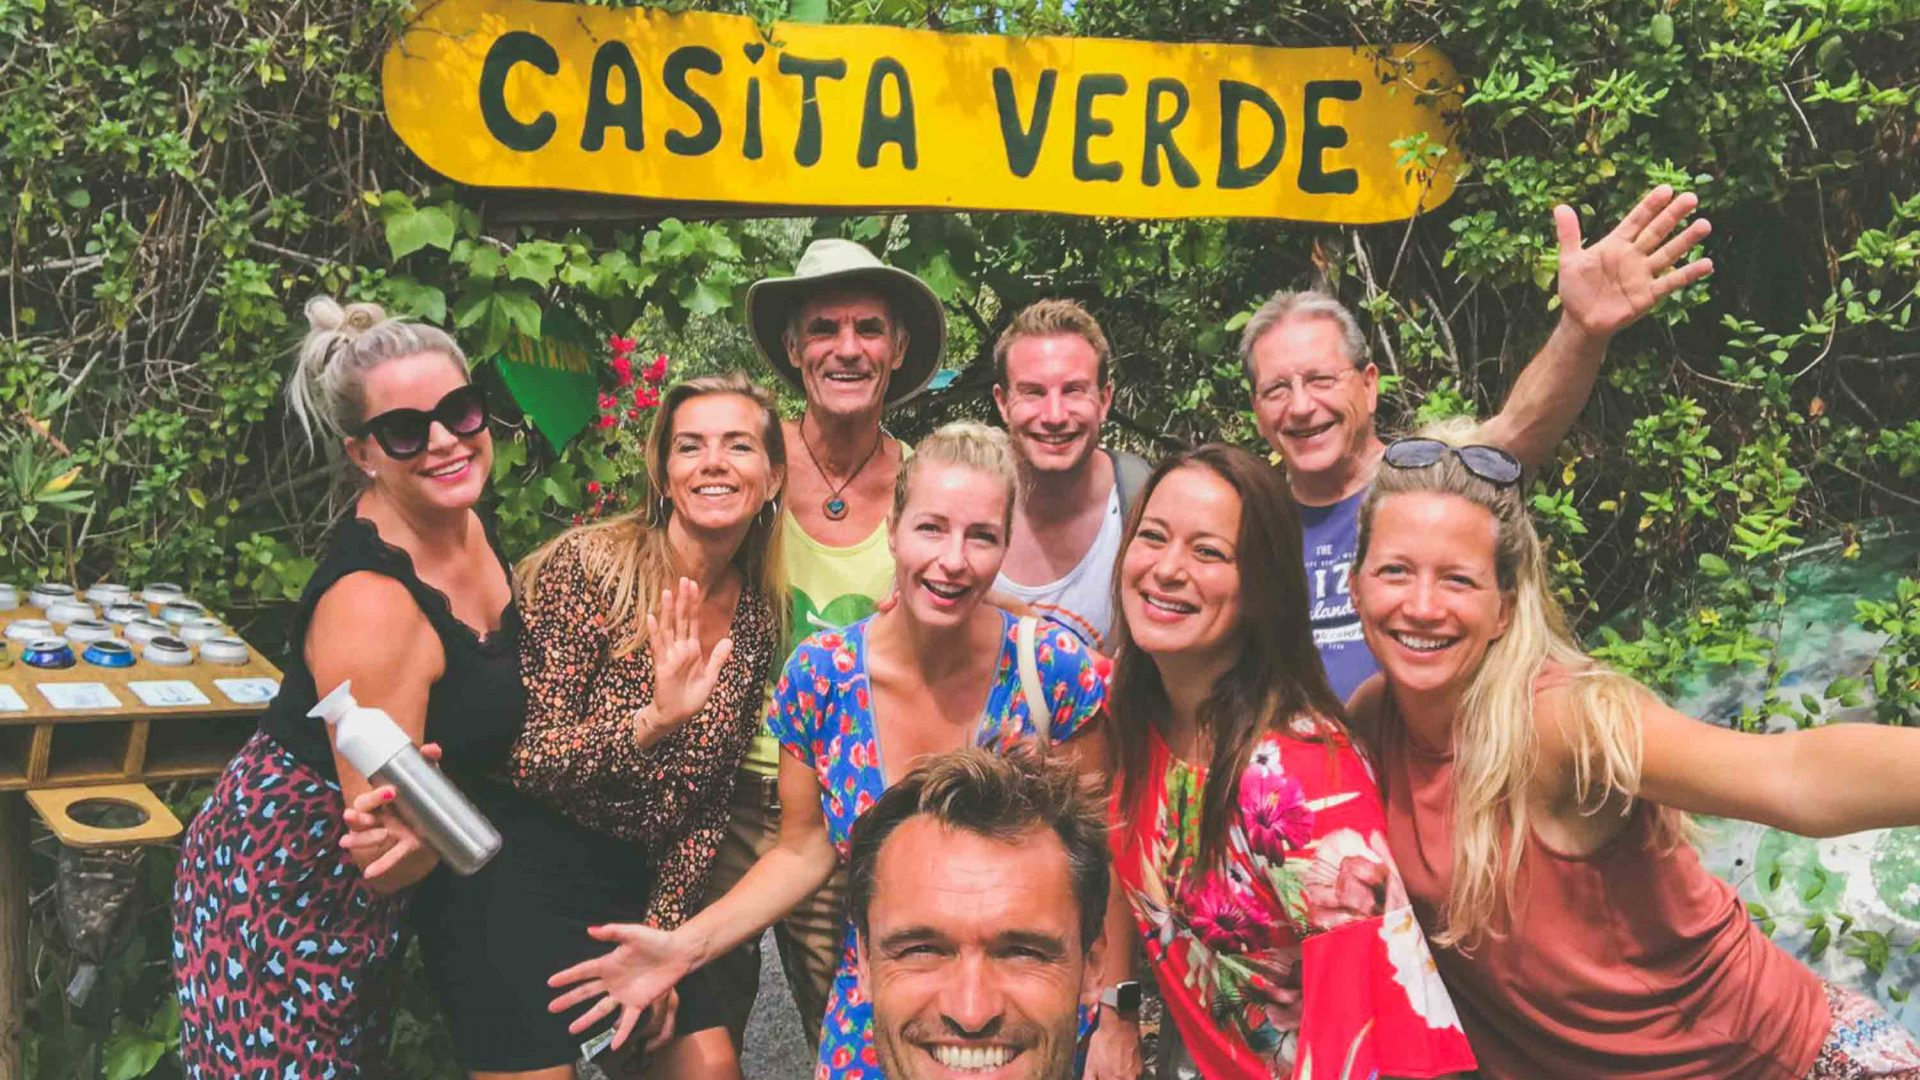 Volunteers at Casita Verde in Ibiza. Chris Dews, coordinator of the Green Heart Movement stands in the back row, wearing a hat.